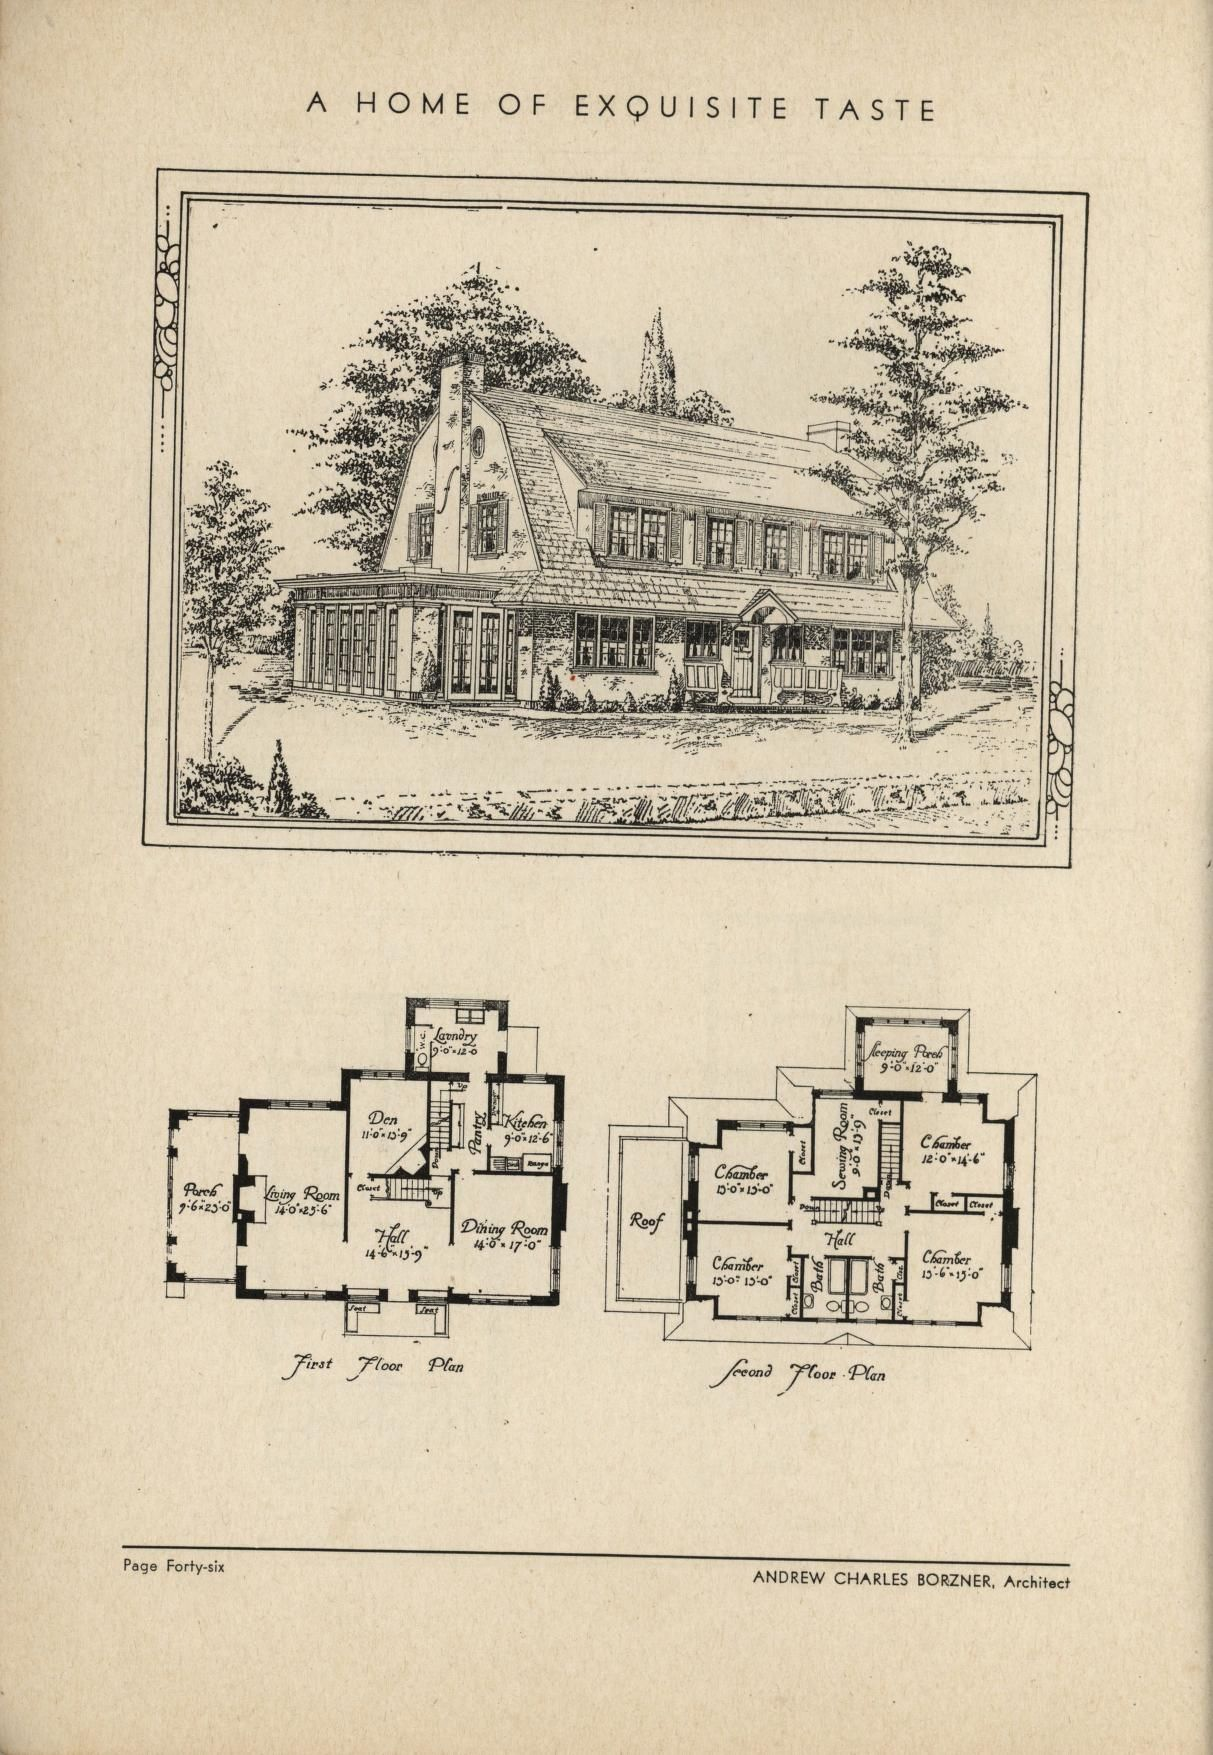 The book of beautiful homes Andrew C Borzner Free Download Borrow and Streaming Internet Archive